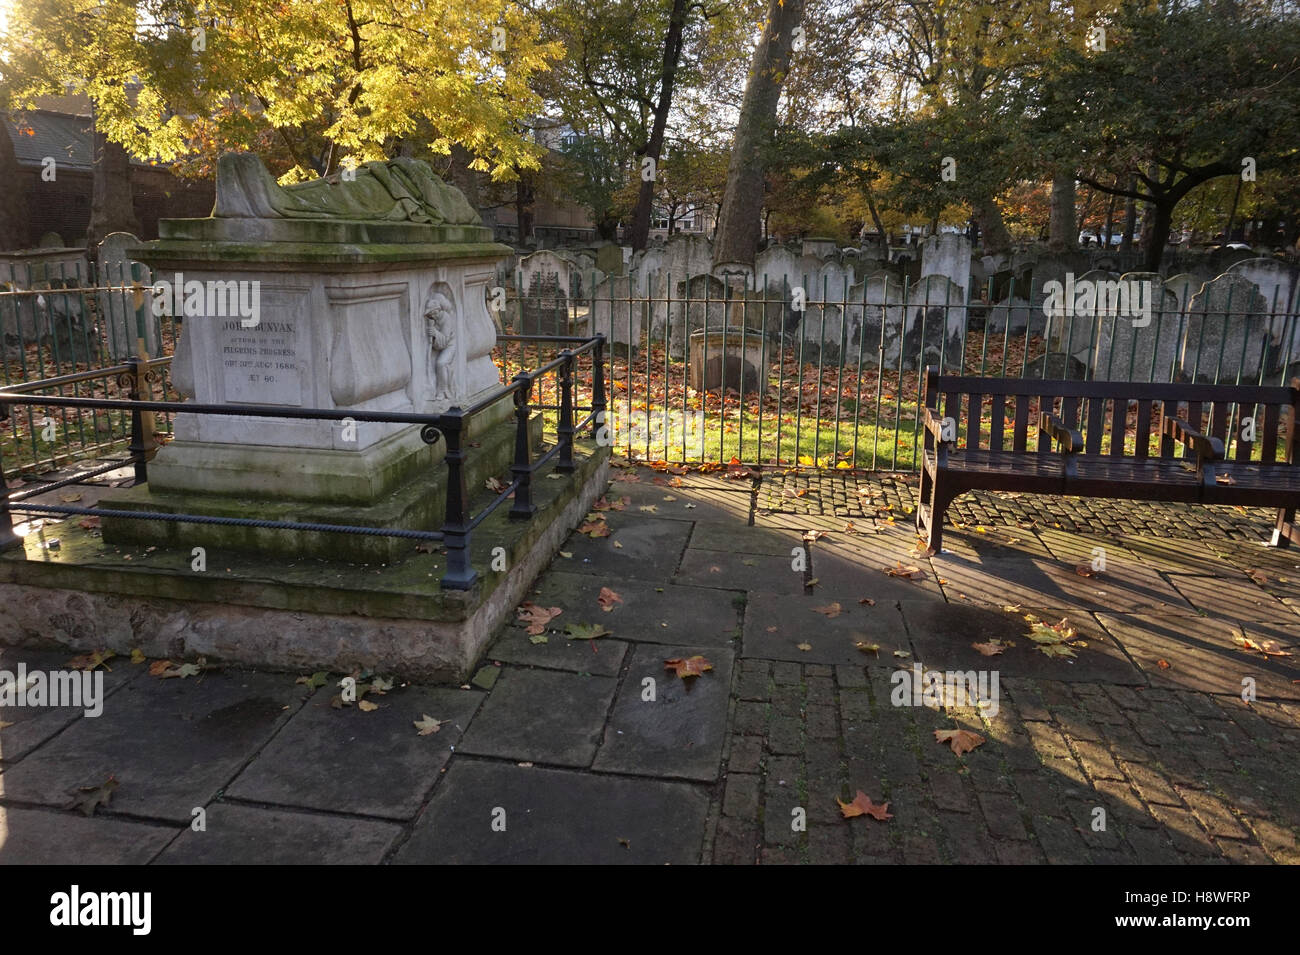 Author of Pilgrim's Progress, John Bunyan's grave Bunhill Fields Burial Ground Cemetery, London, England, - Stock Image